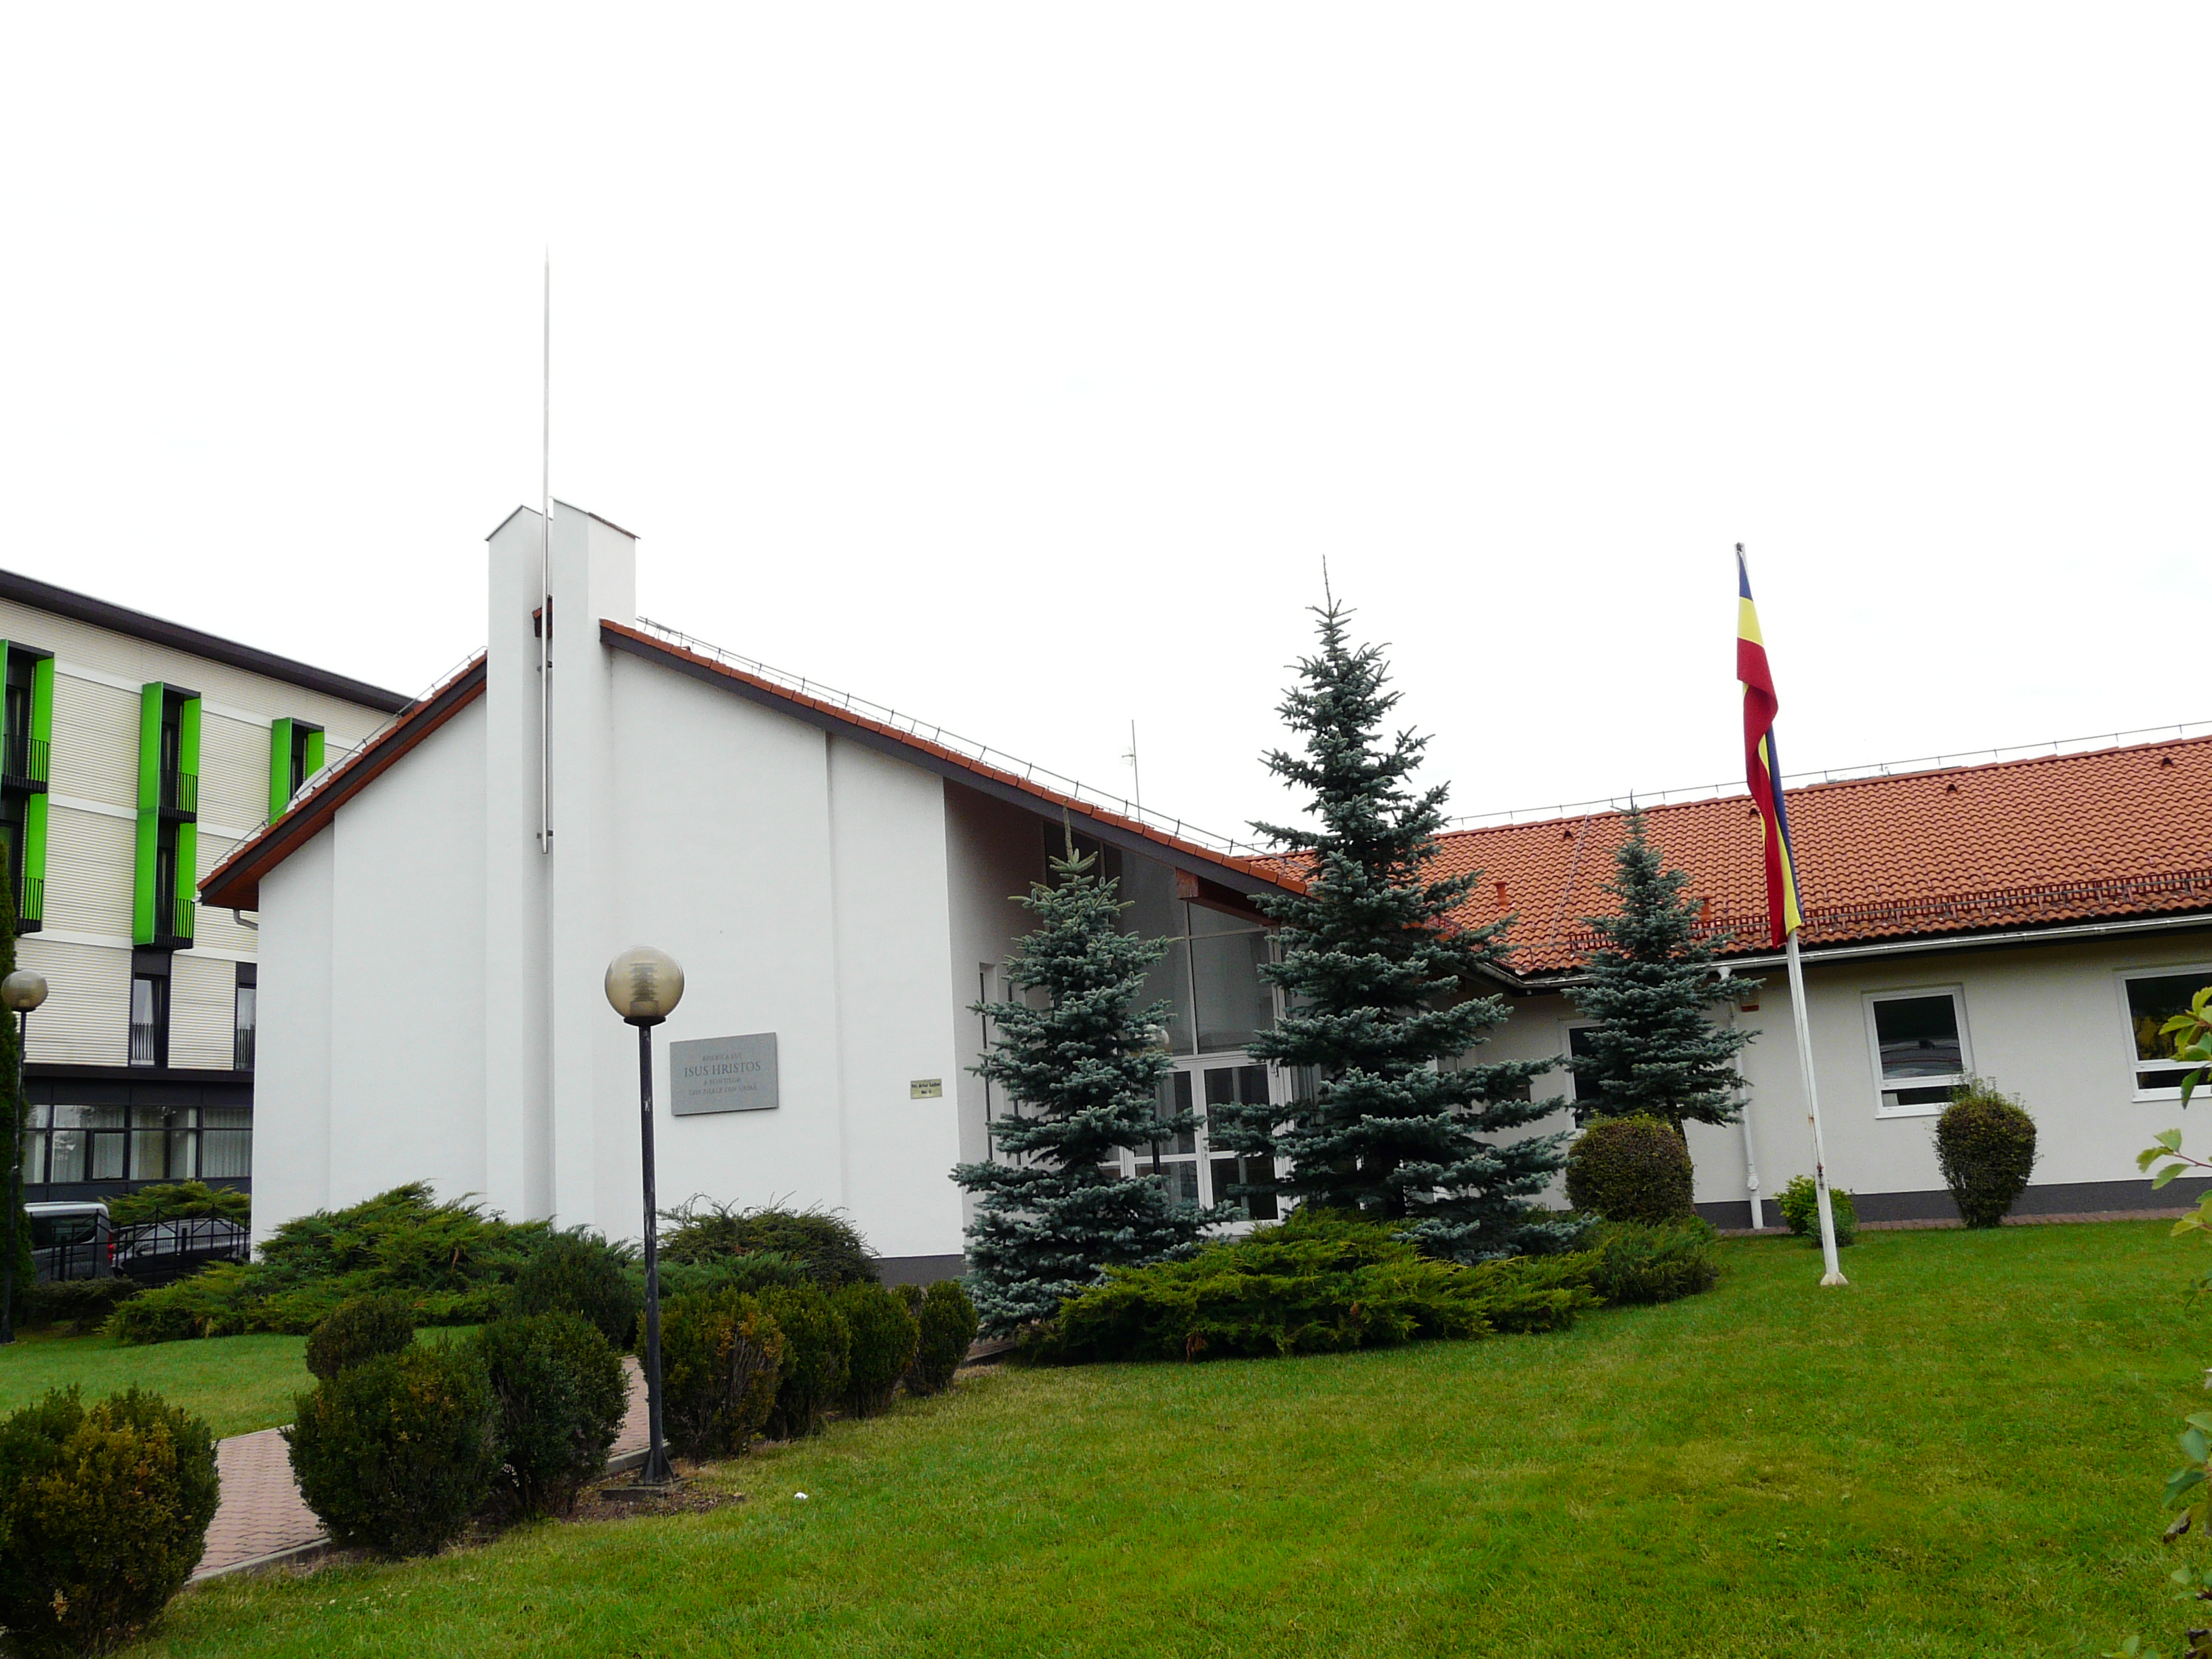 Brasov Branch is one of few actual meetinghouses in Romania and has around 40 members in attendance for weekly Sunday services. Many branches meet in rented spaces or homes.